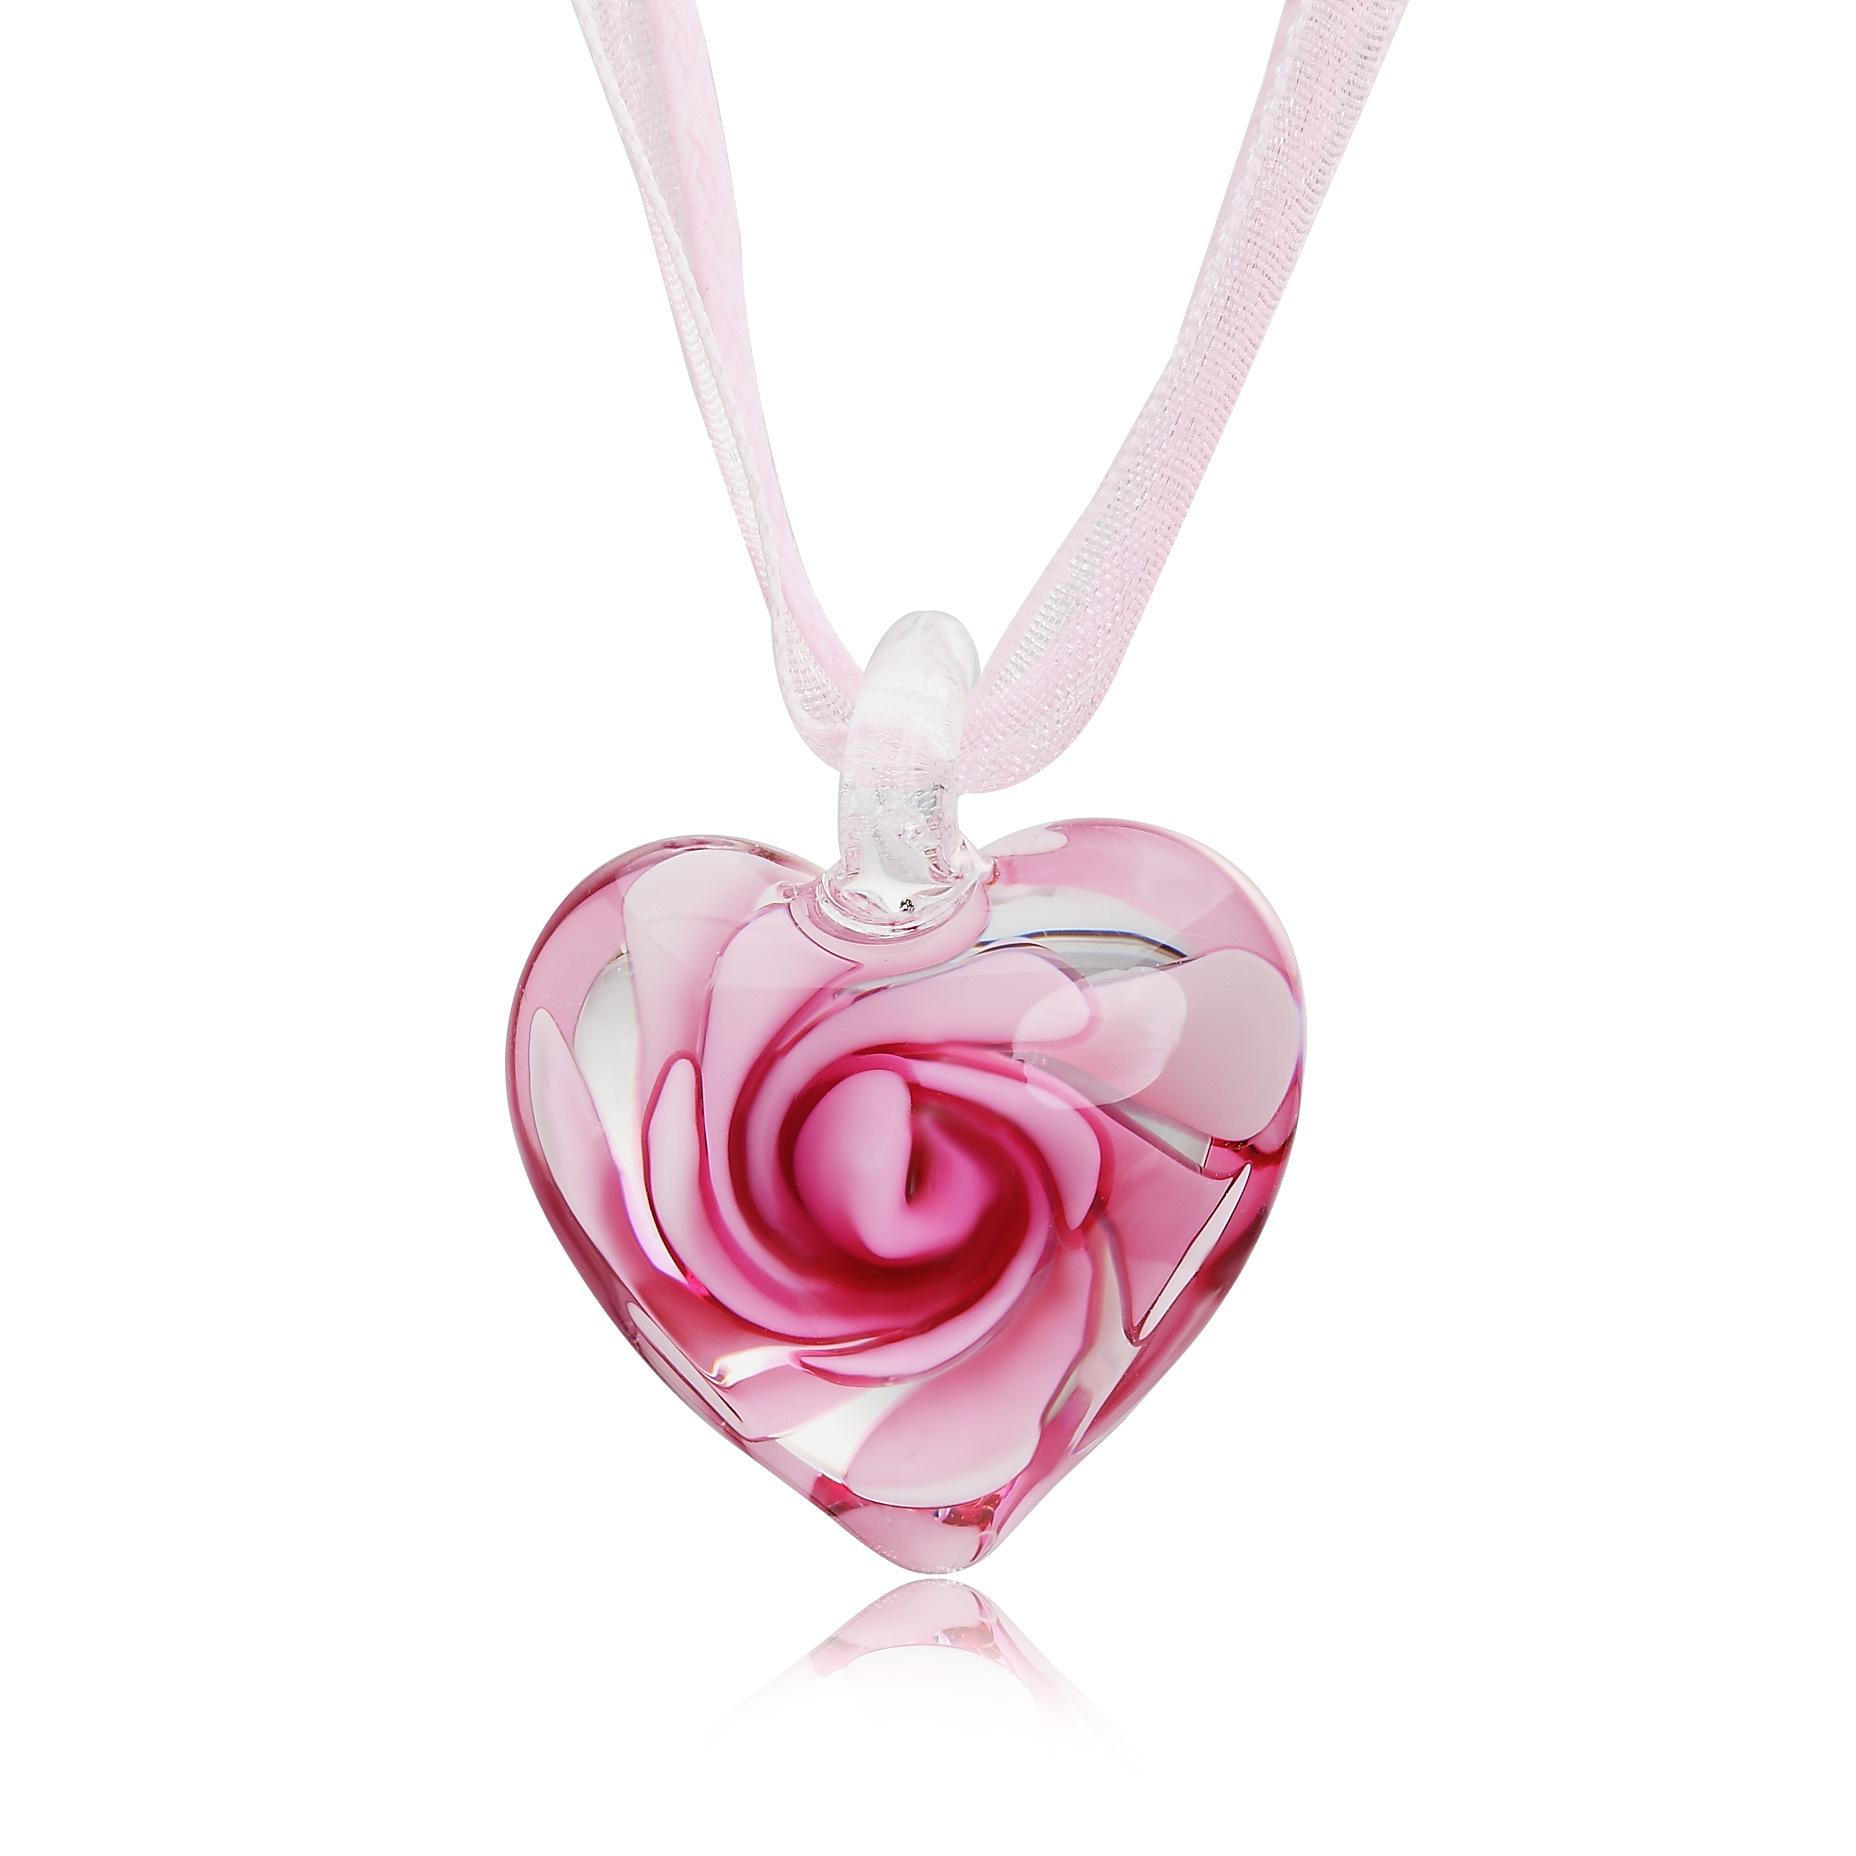 Heart With Rose Flowers Inside Lampwork Murano Italian Venetian Glass Fashion Earrings & Necklace Jewelry Sets Handmade Jewelry Intended For Most Recent Pink Murano Glass Leaf Pendant Necklaces (View 25 of 25)